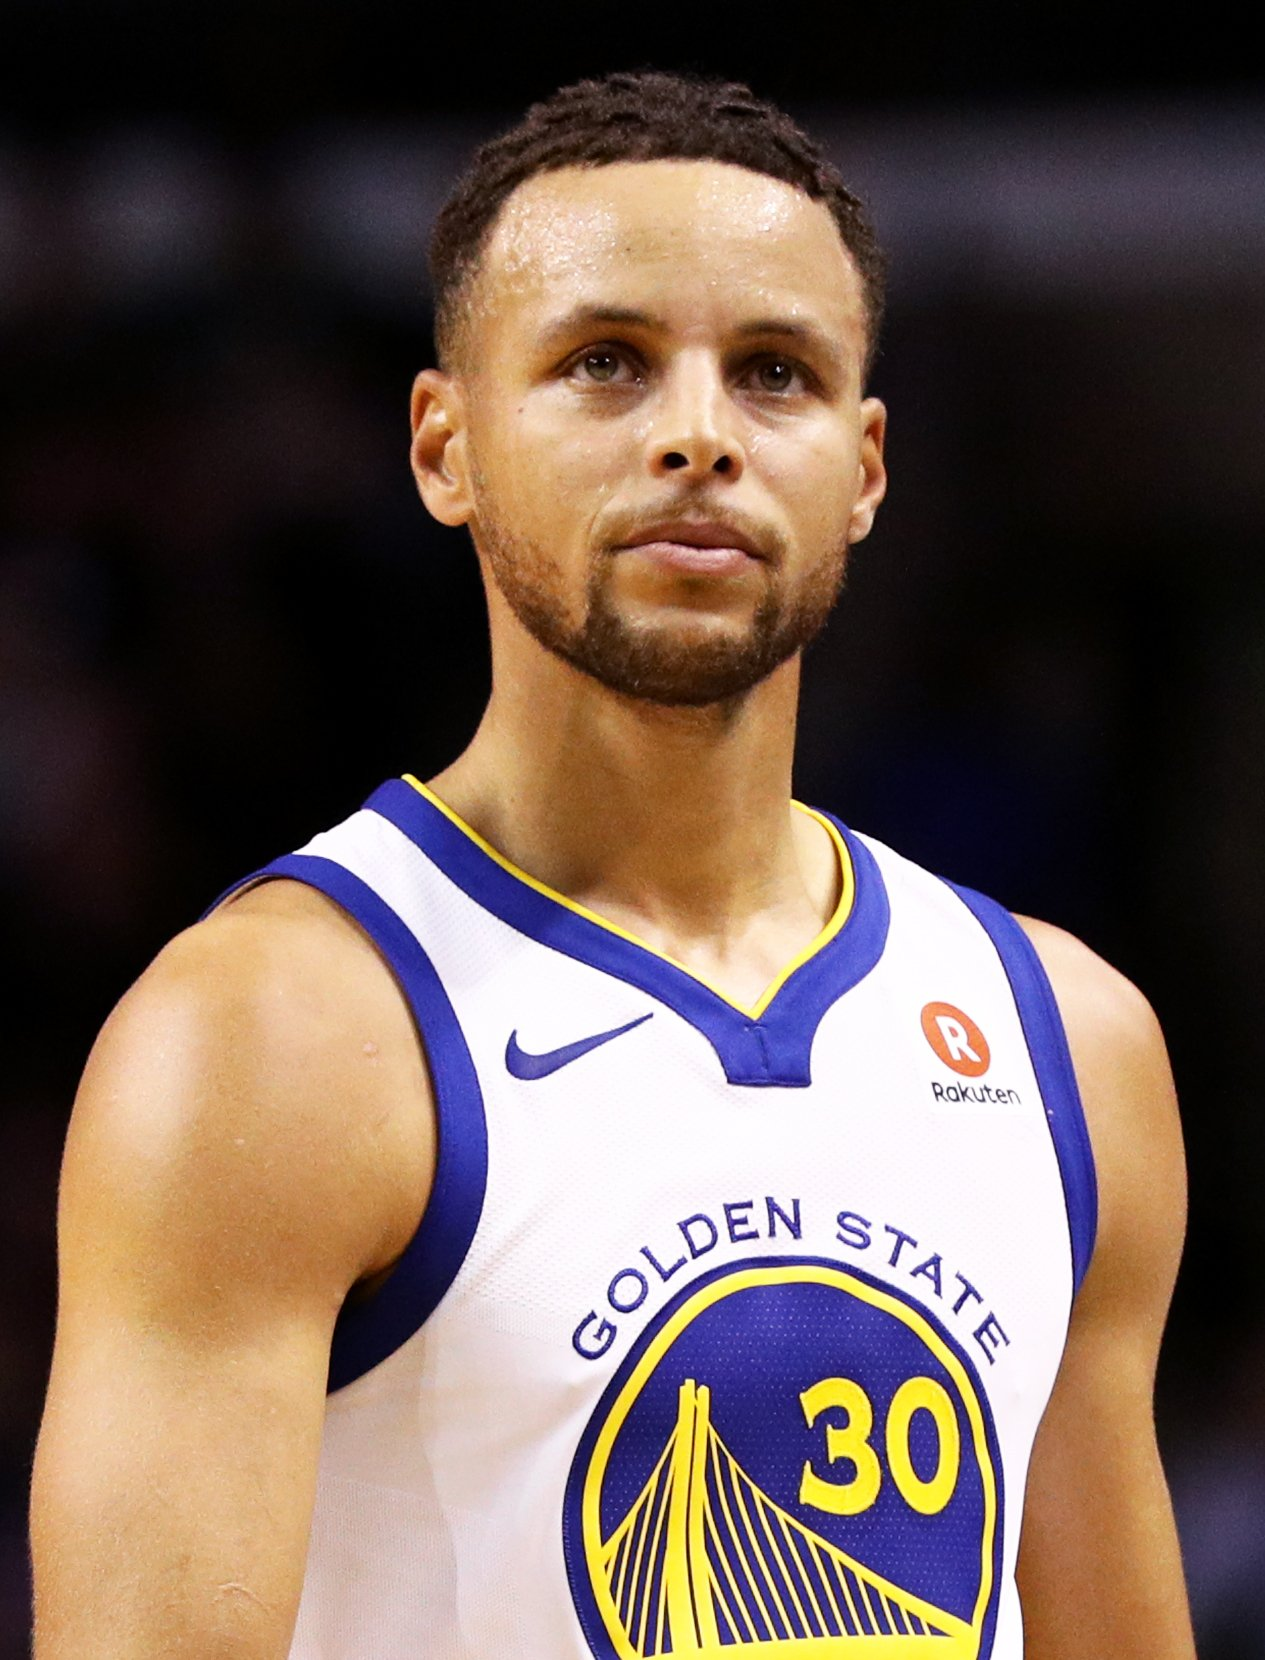 Stephen Curry #30 of the Golden State Warriors during a game against the Boston Celtics on Nov. 16, 2017 in Massachusetts | Photo: Getty Images